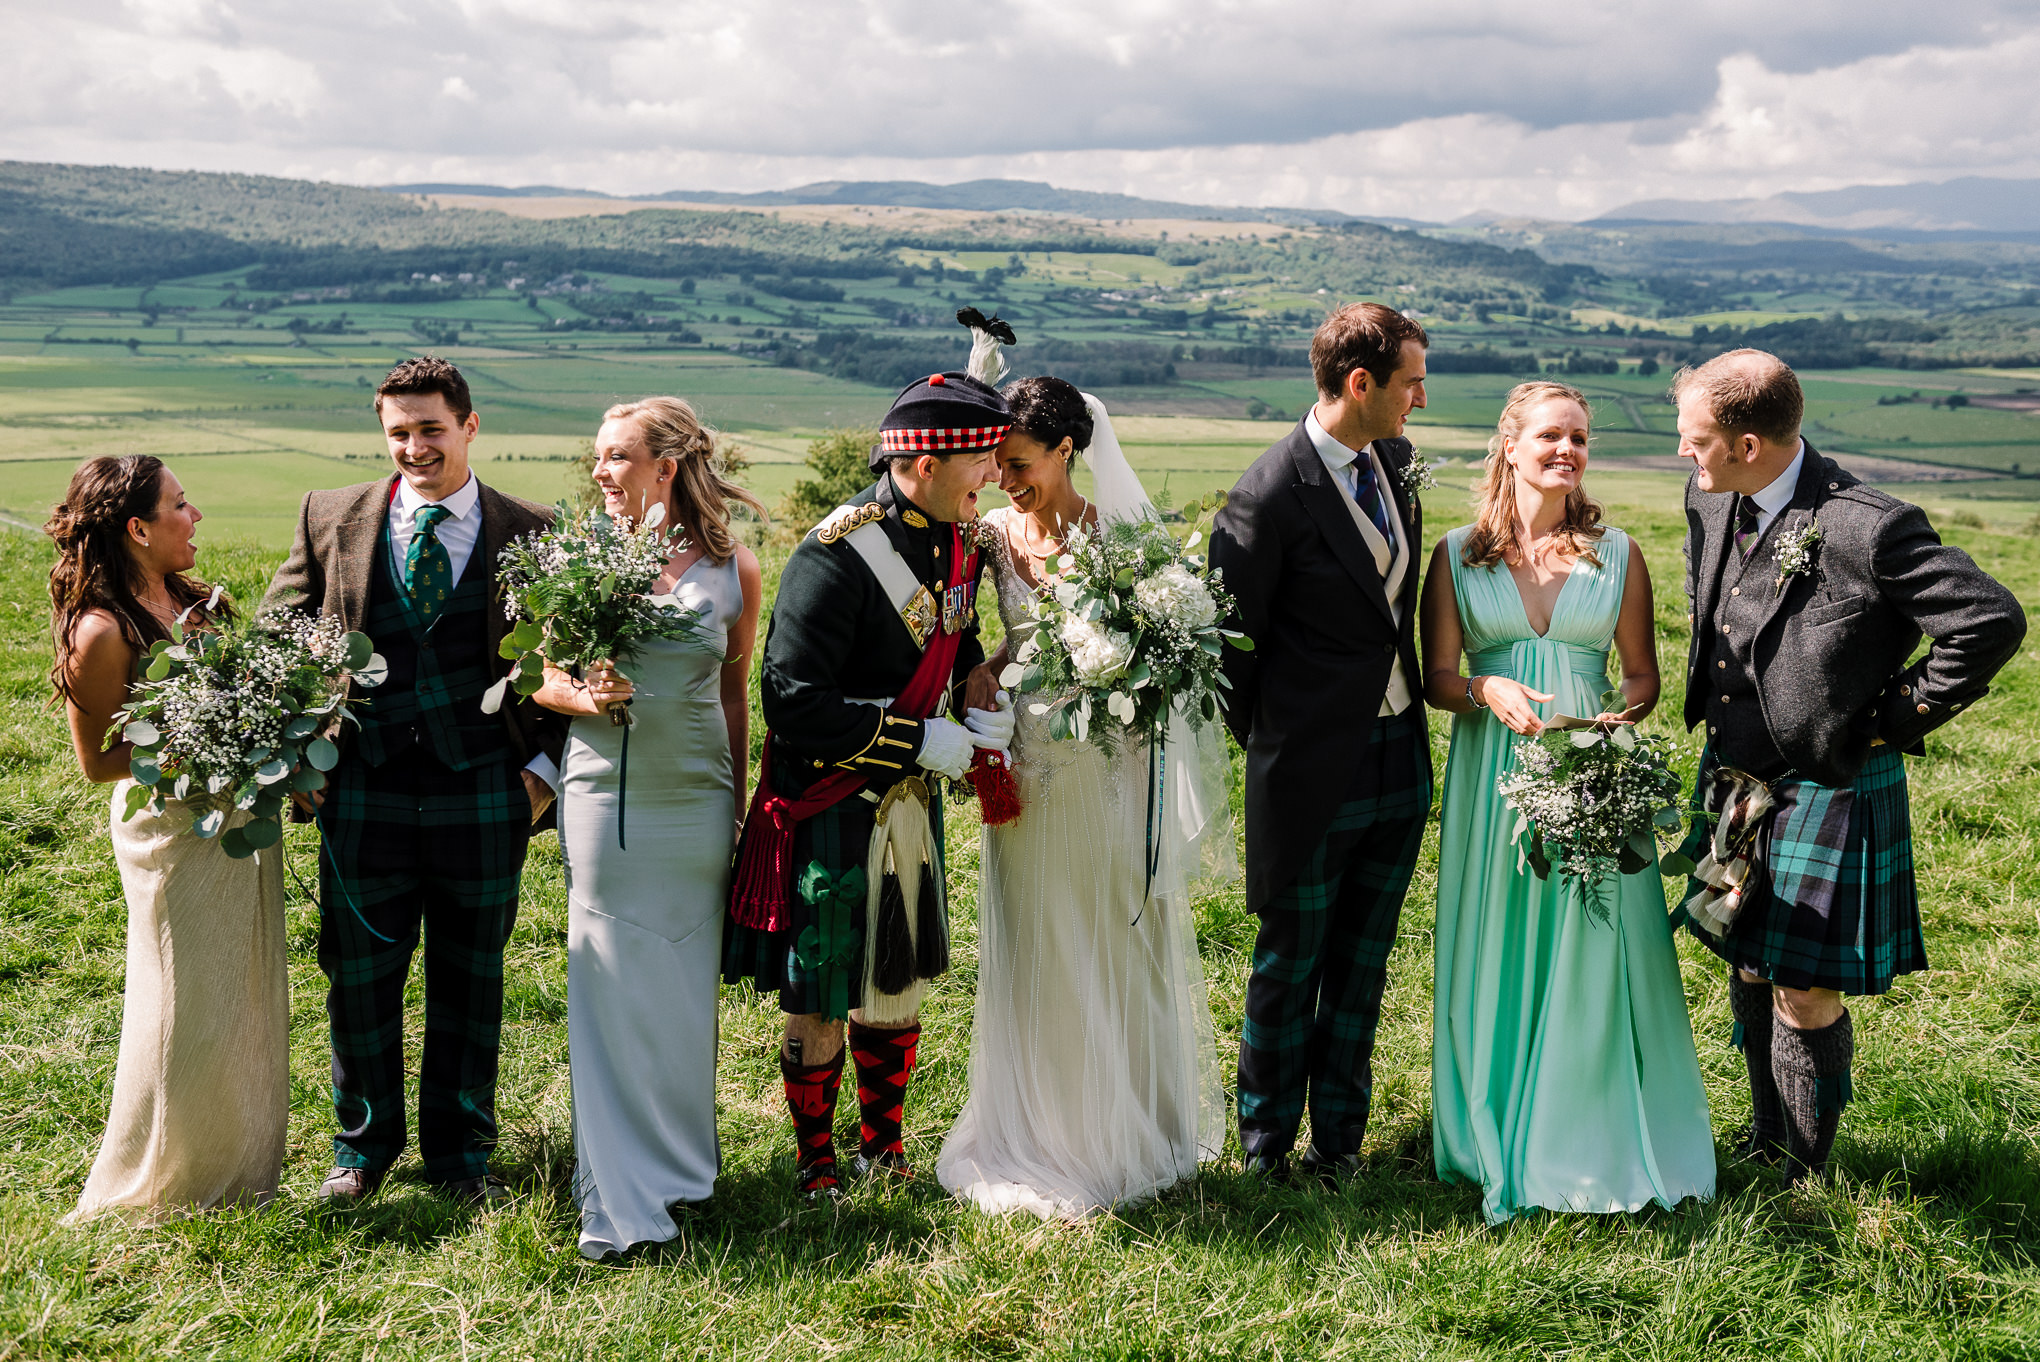 Natural photo of bridal party on the hillside. Lake district wedding photography